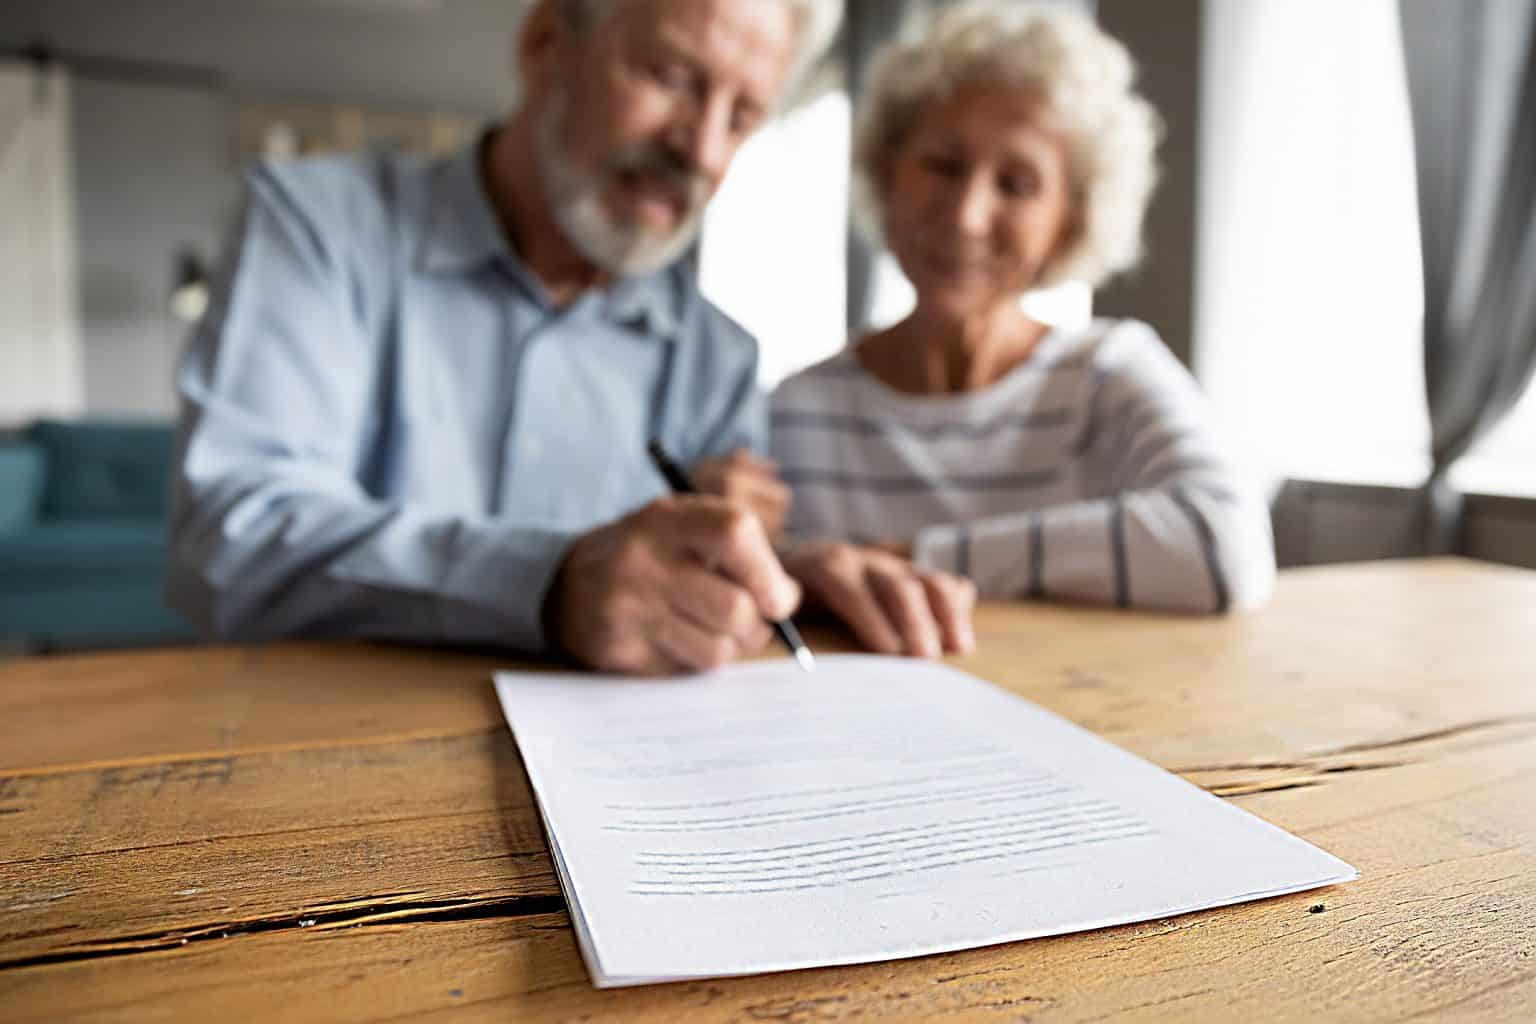 Couple signing enduring power of attorney document